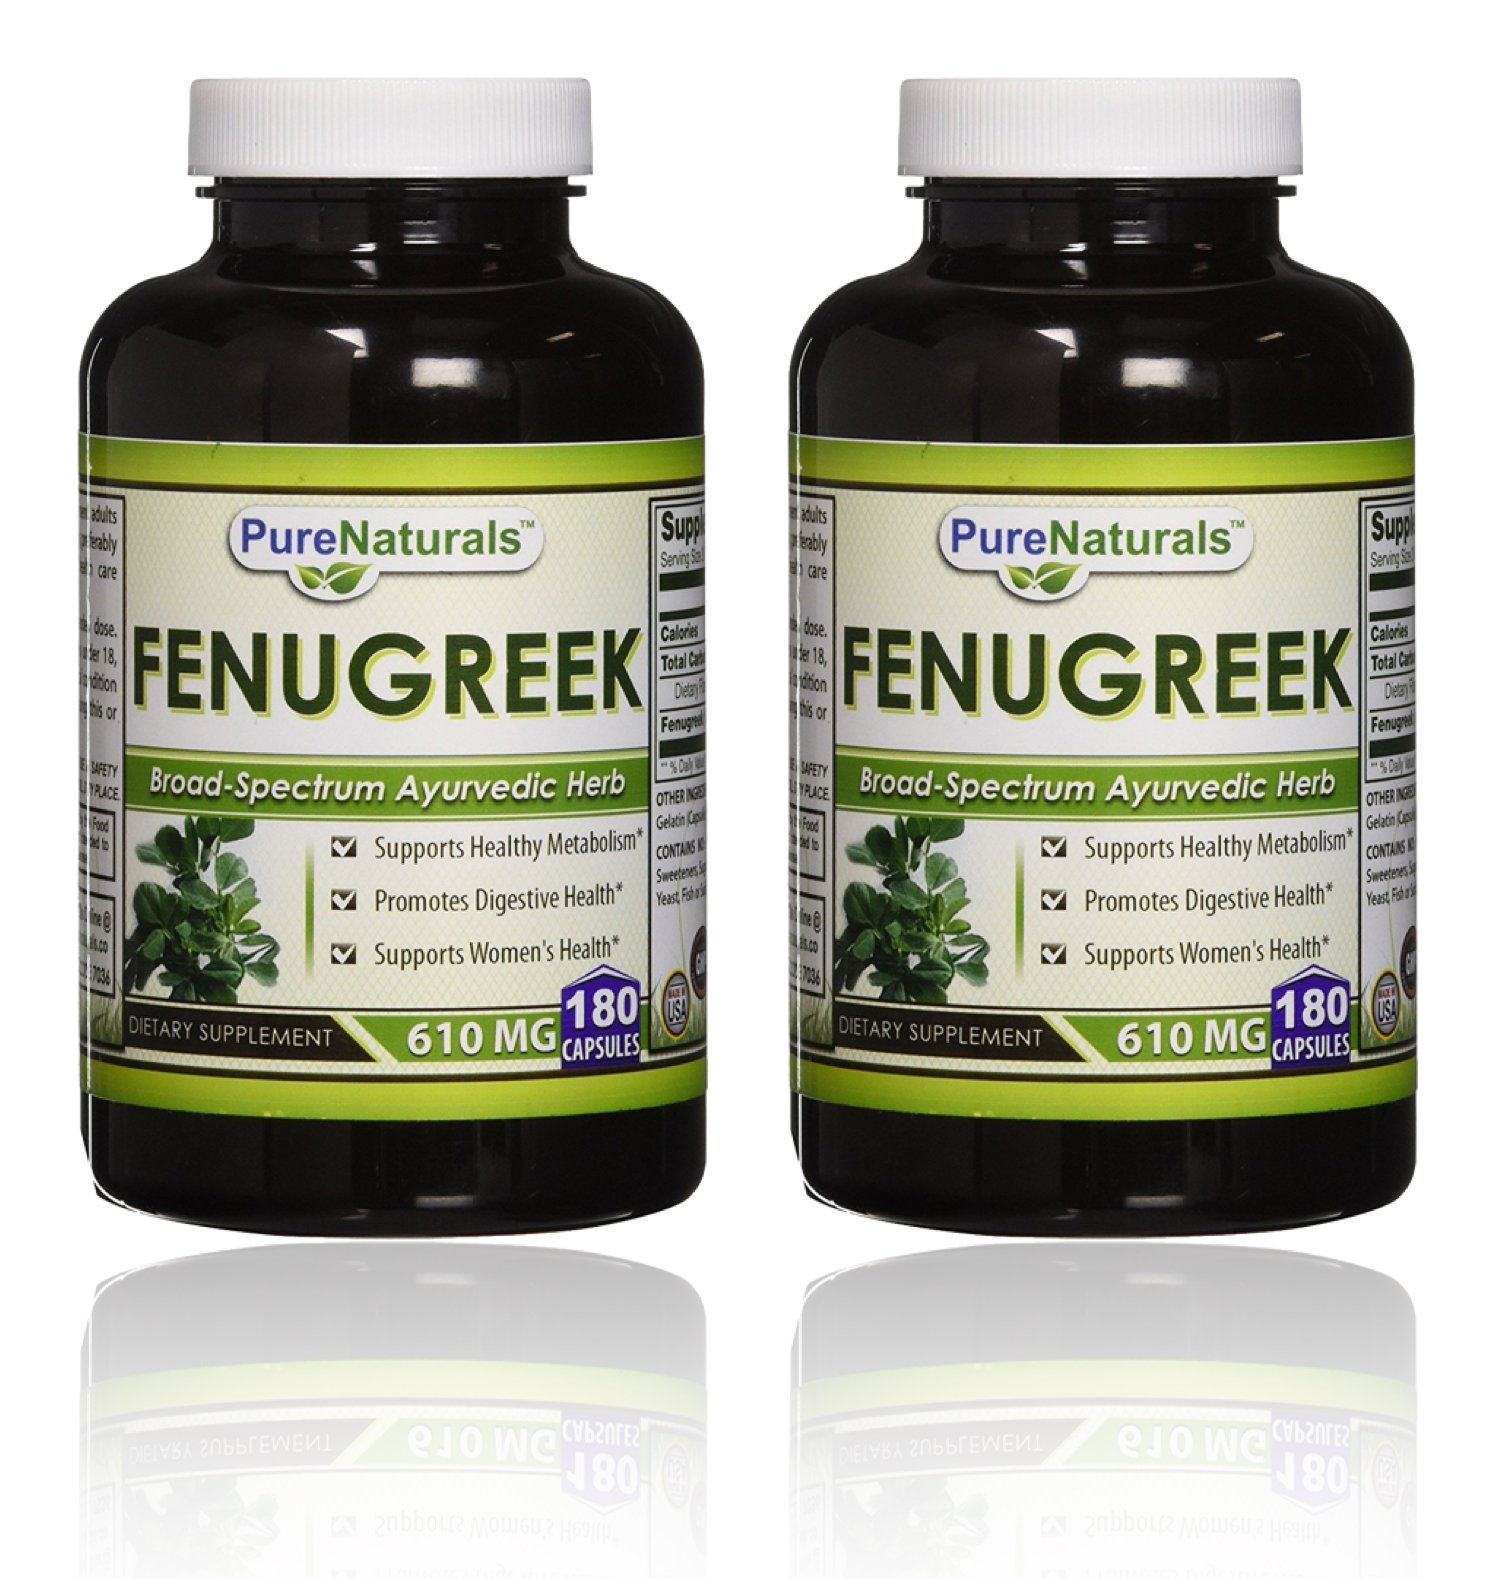 Pure Naturals Fenugreek Seed, 610 Mg, 180 Count - 2 Pack